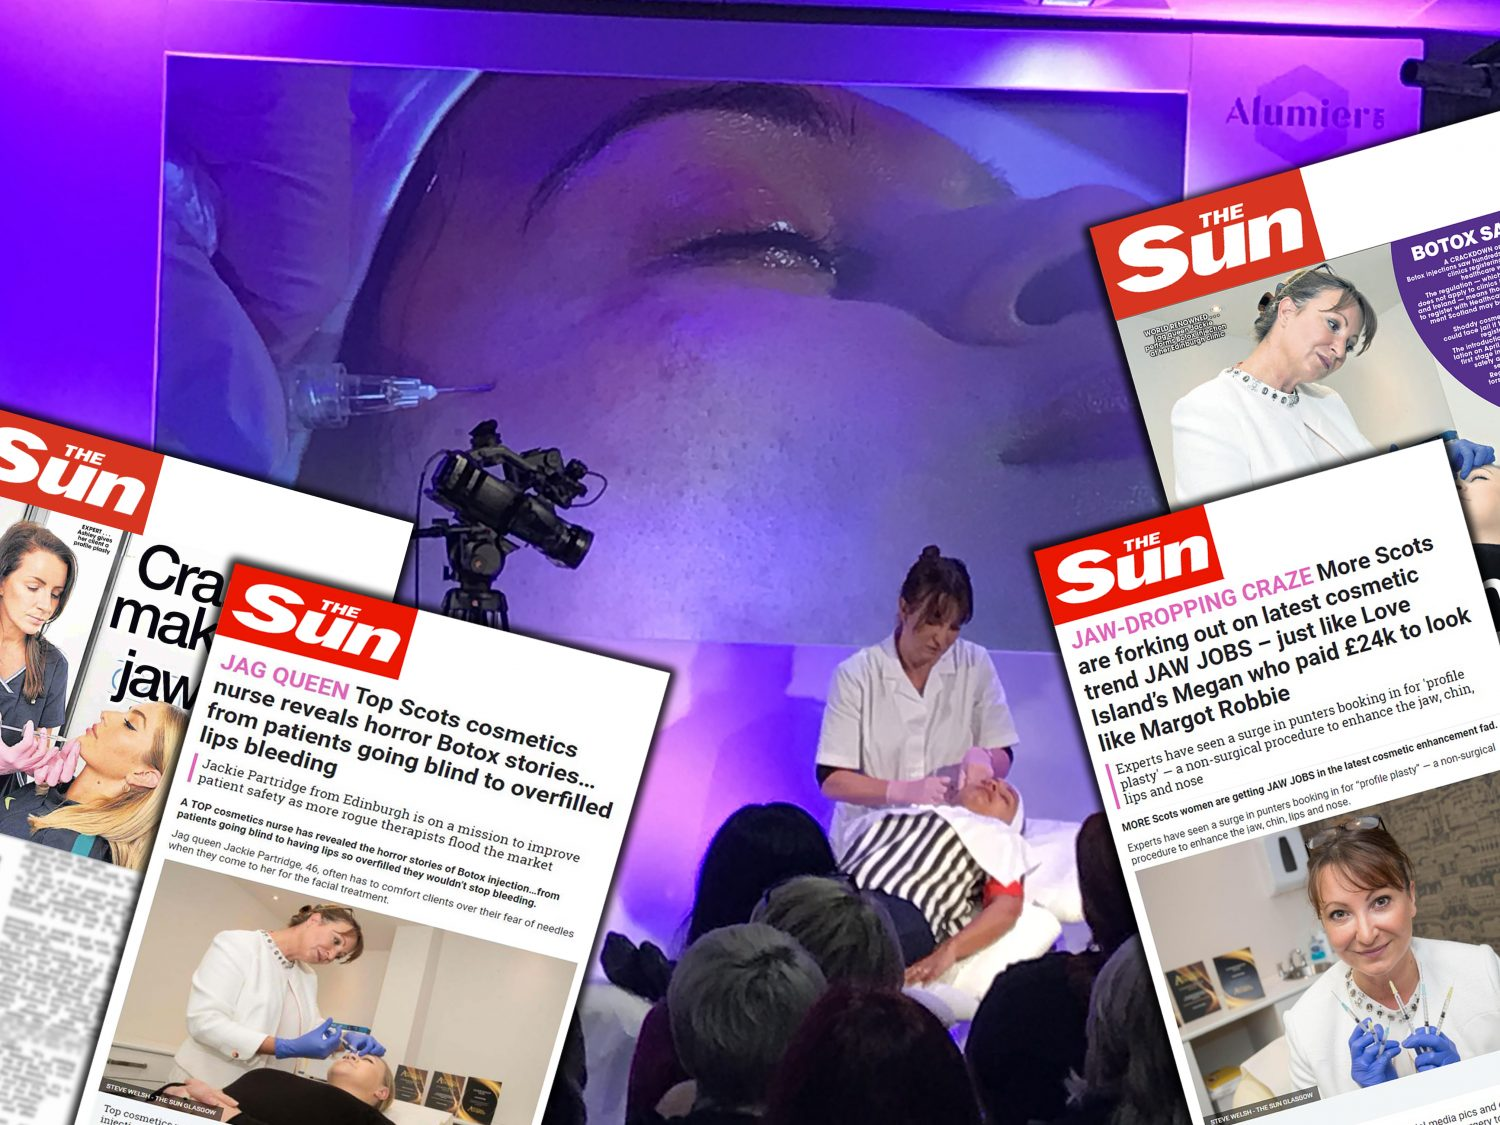 Queen of face injections is best under The Sun : Holyrood PR